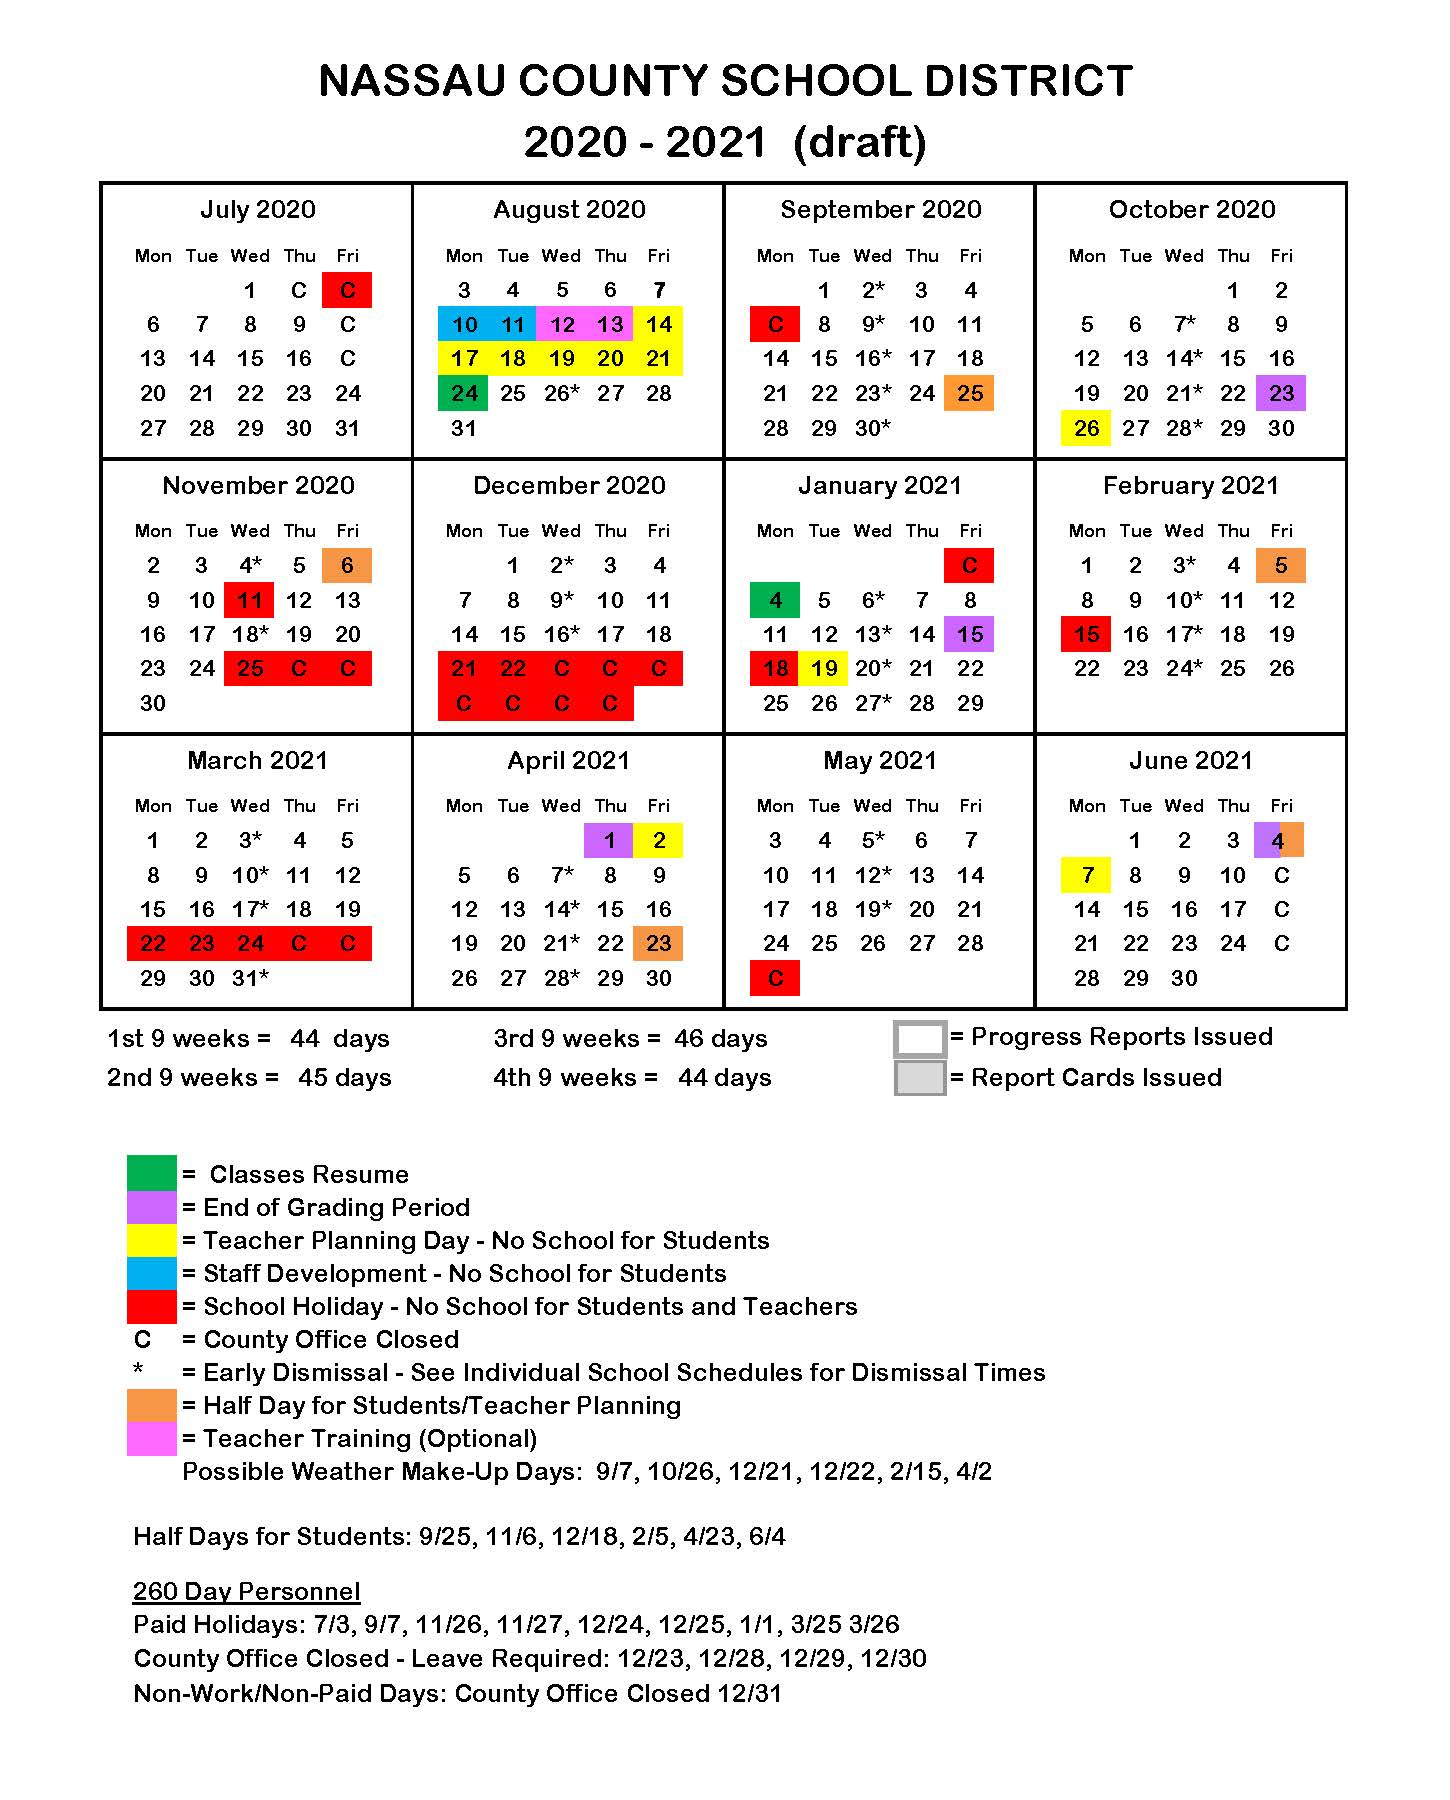 Florida Public School Calendars – All Districts Start Dates In Metro Nashville School Calendar 2021 20